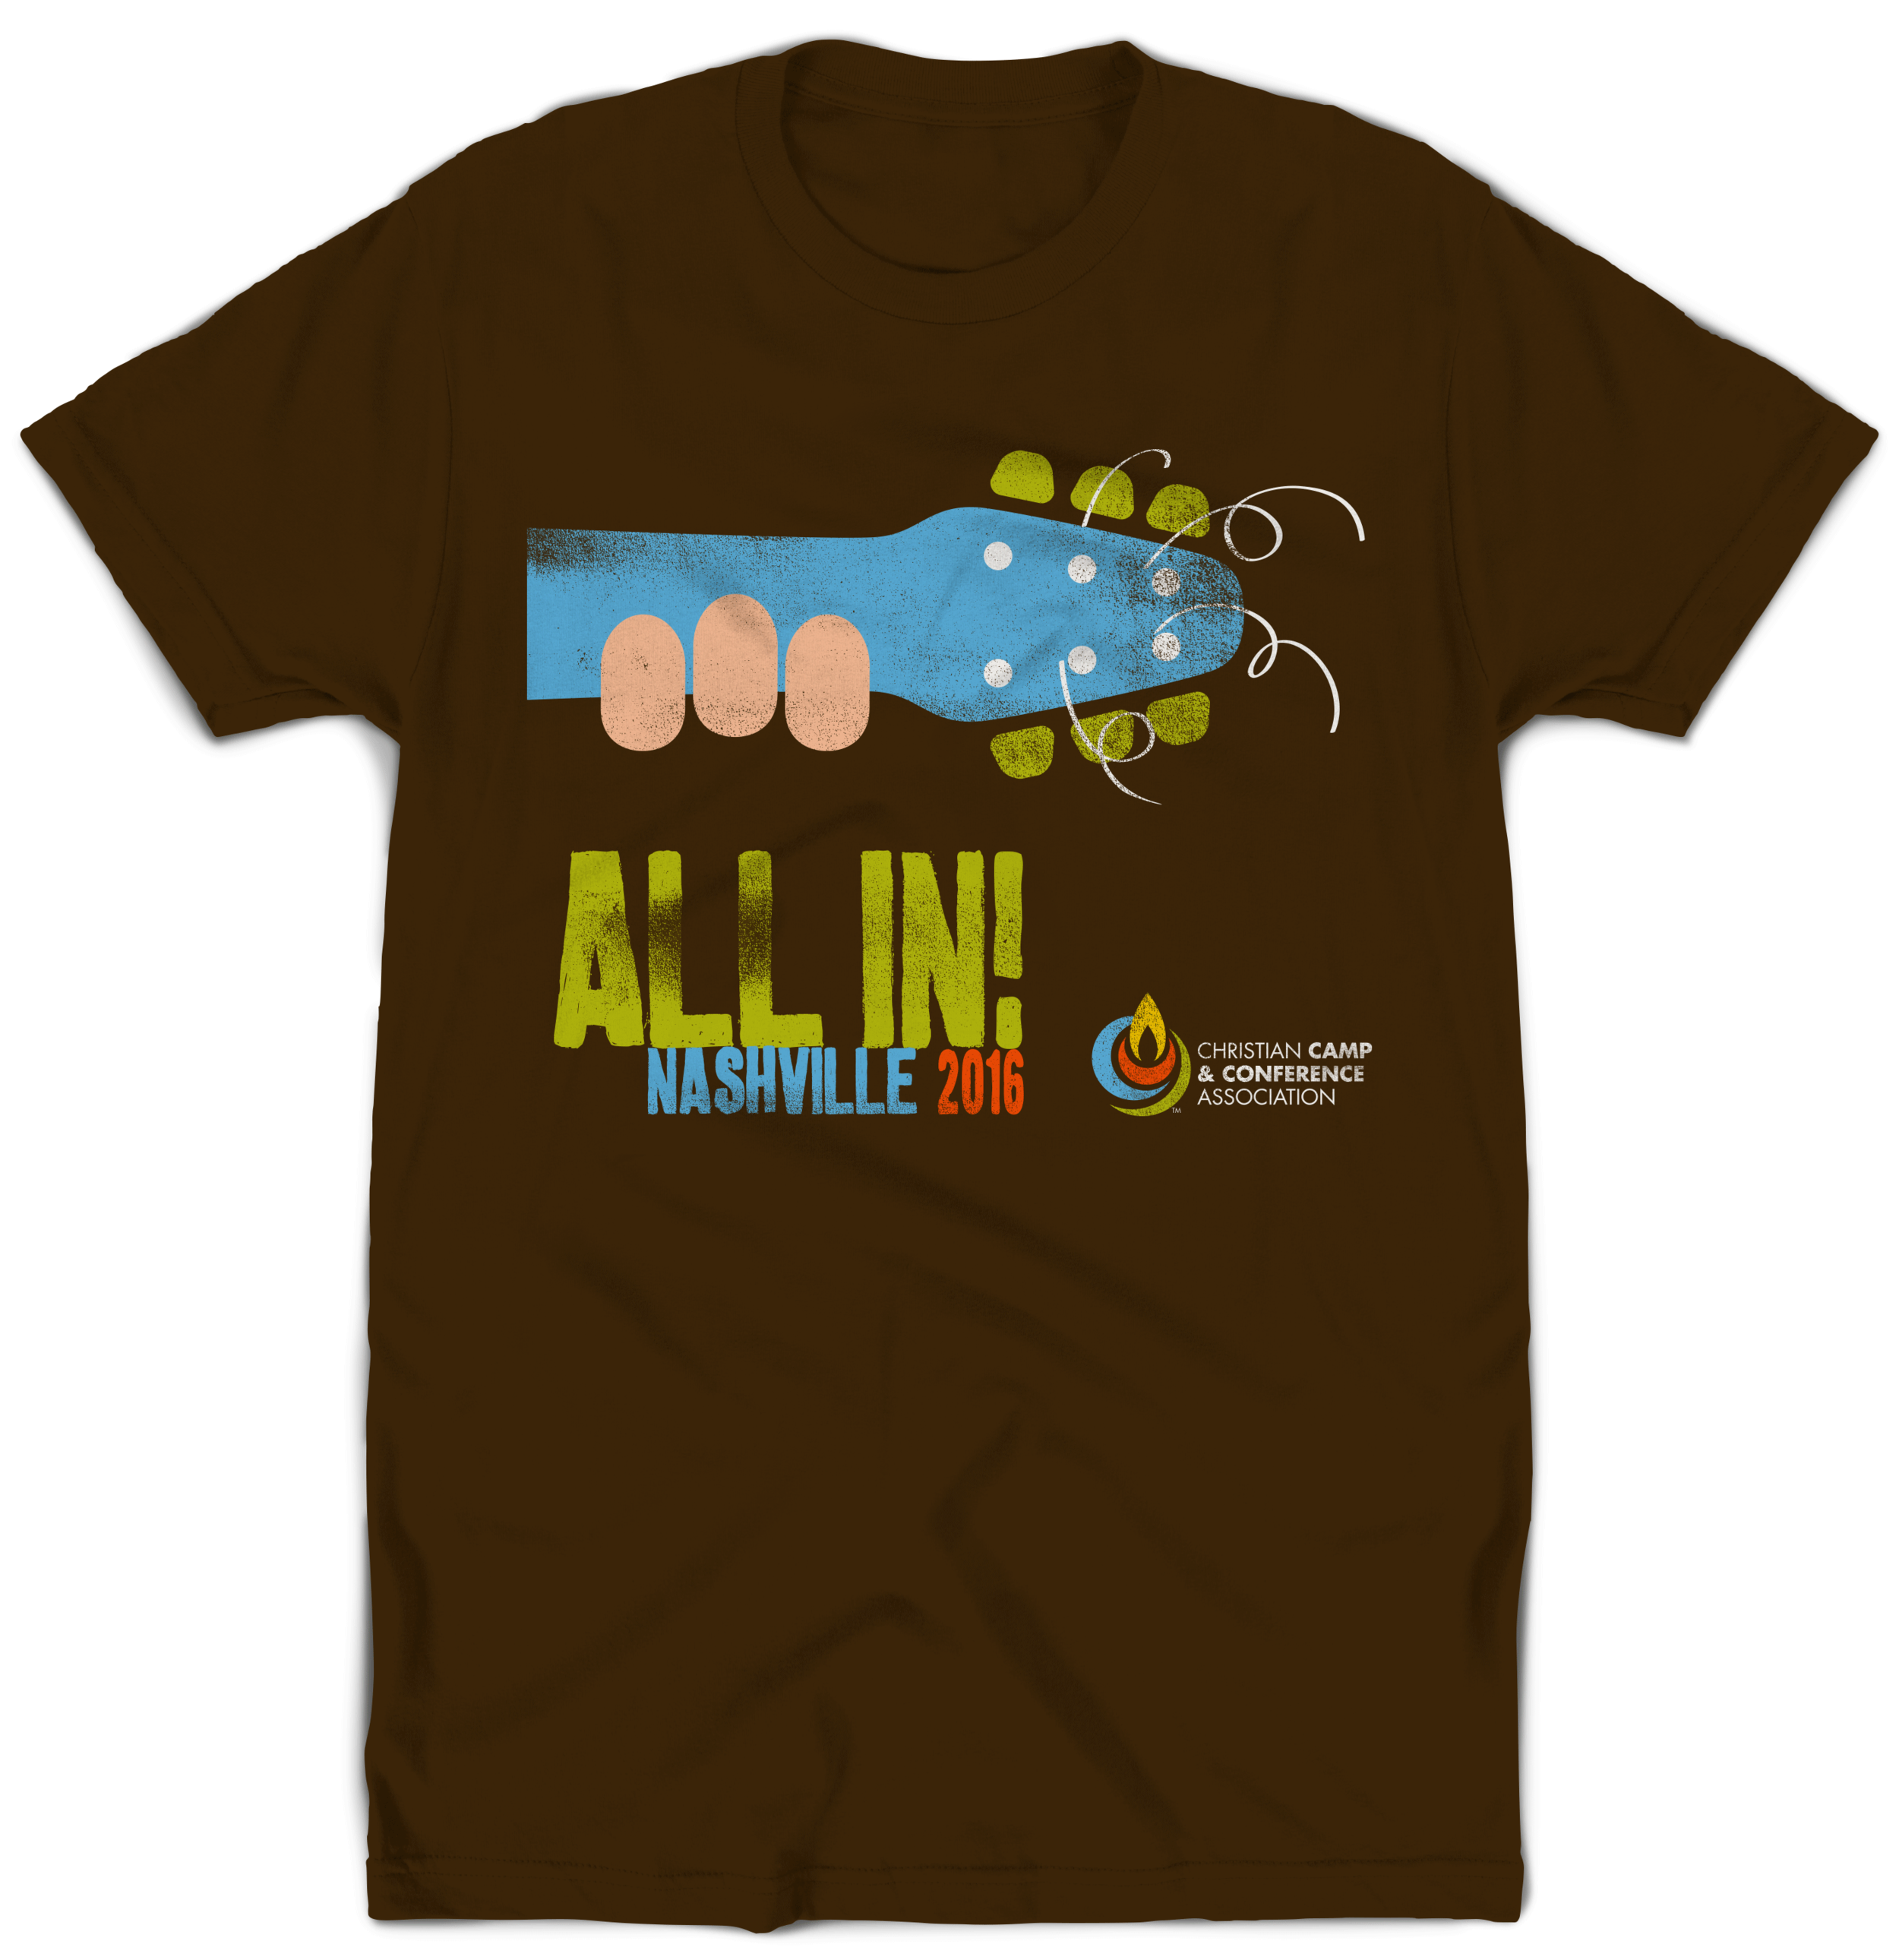 All In conference souvenir Tee | Printed in-house for the Christian Camp and Conference (CCCA) 2016 All In Conference.